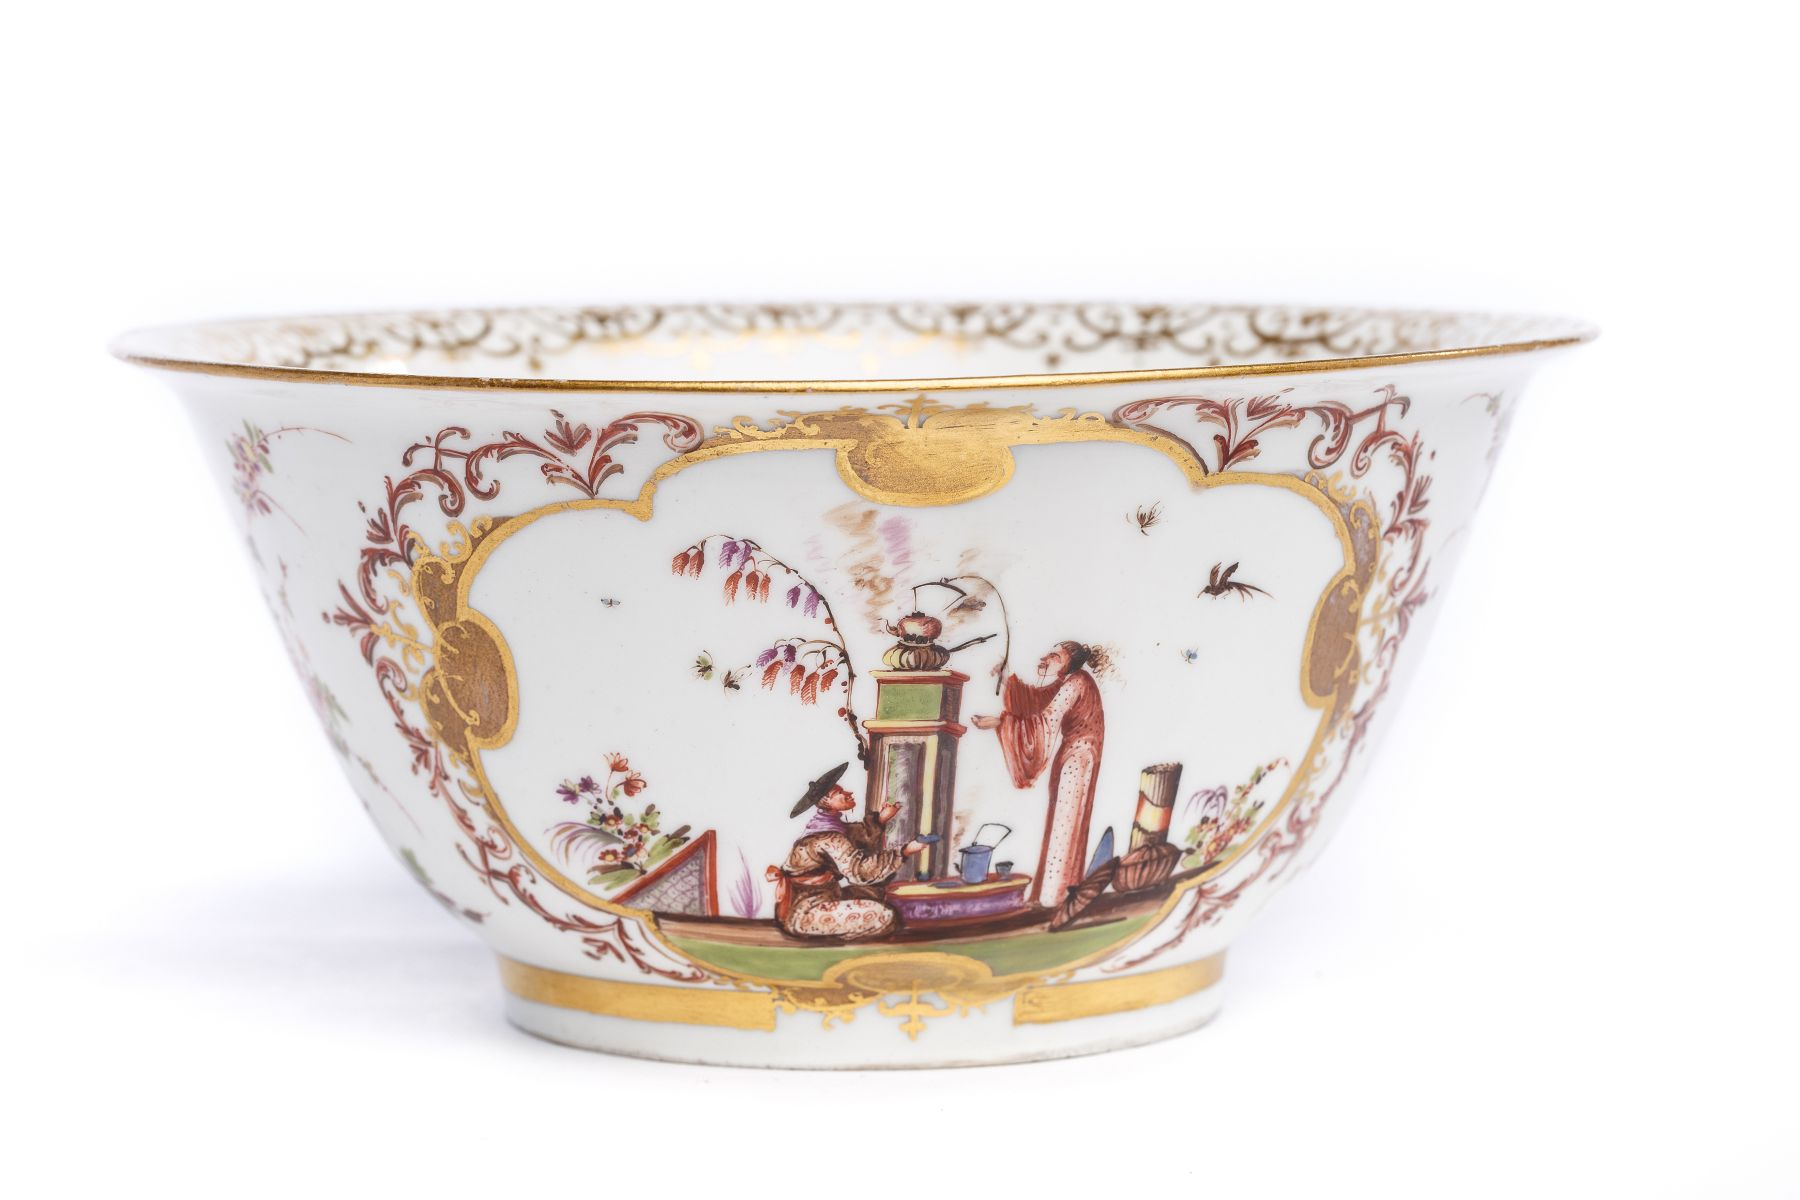 """#3 Rare bowl with """"Chinoiserie"""" scenes, Meissen 1723/25 